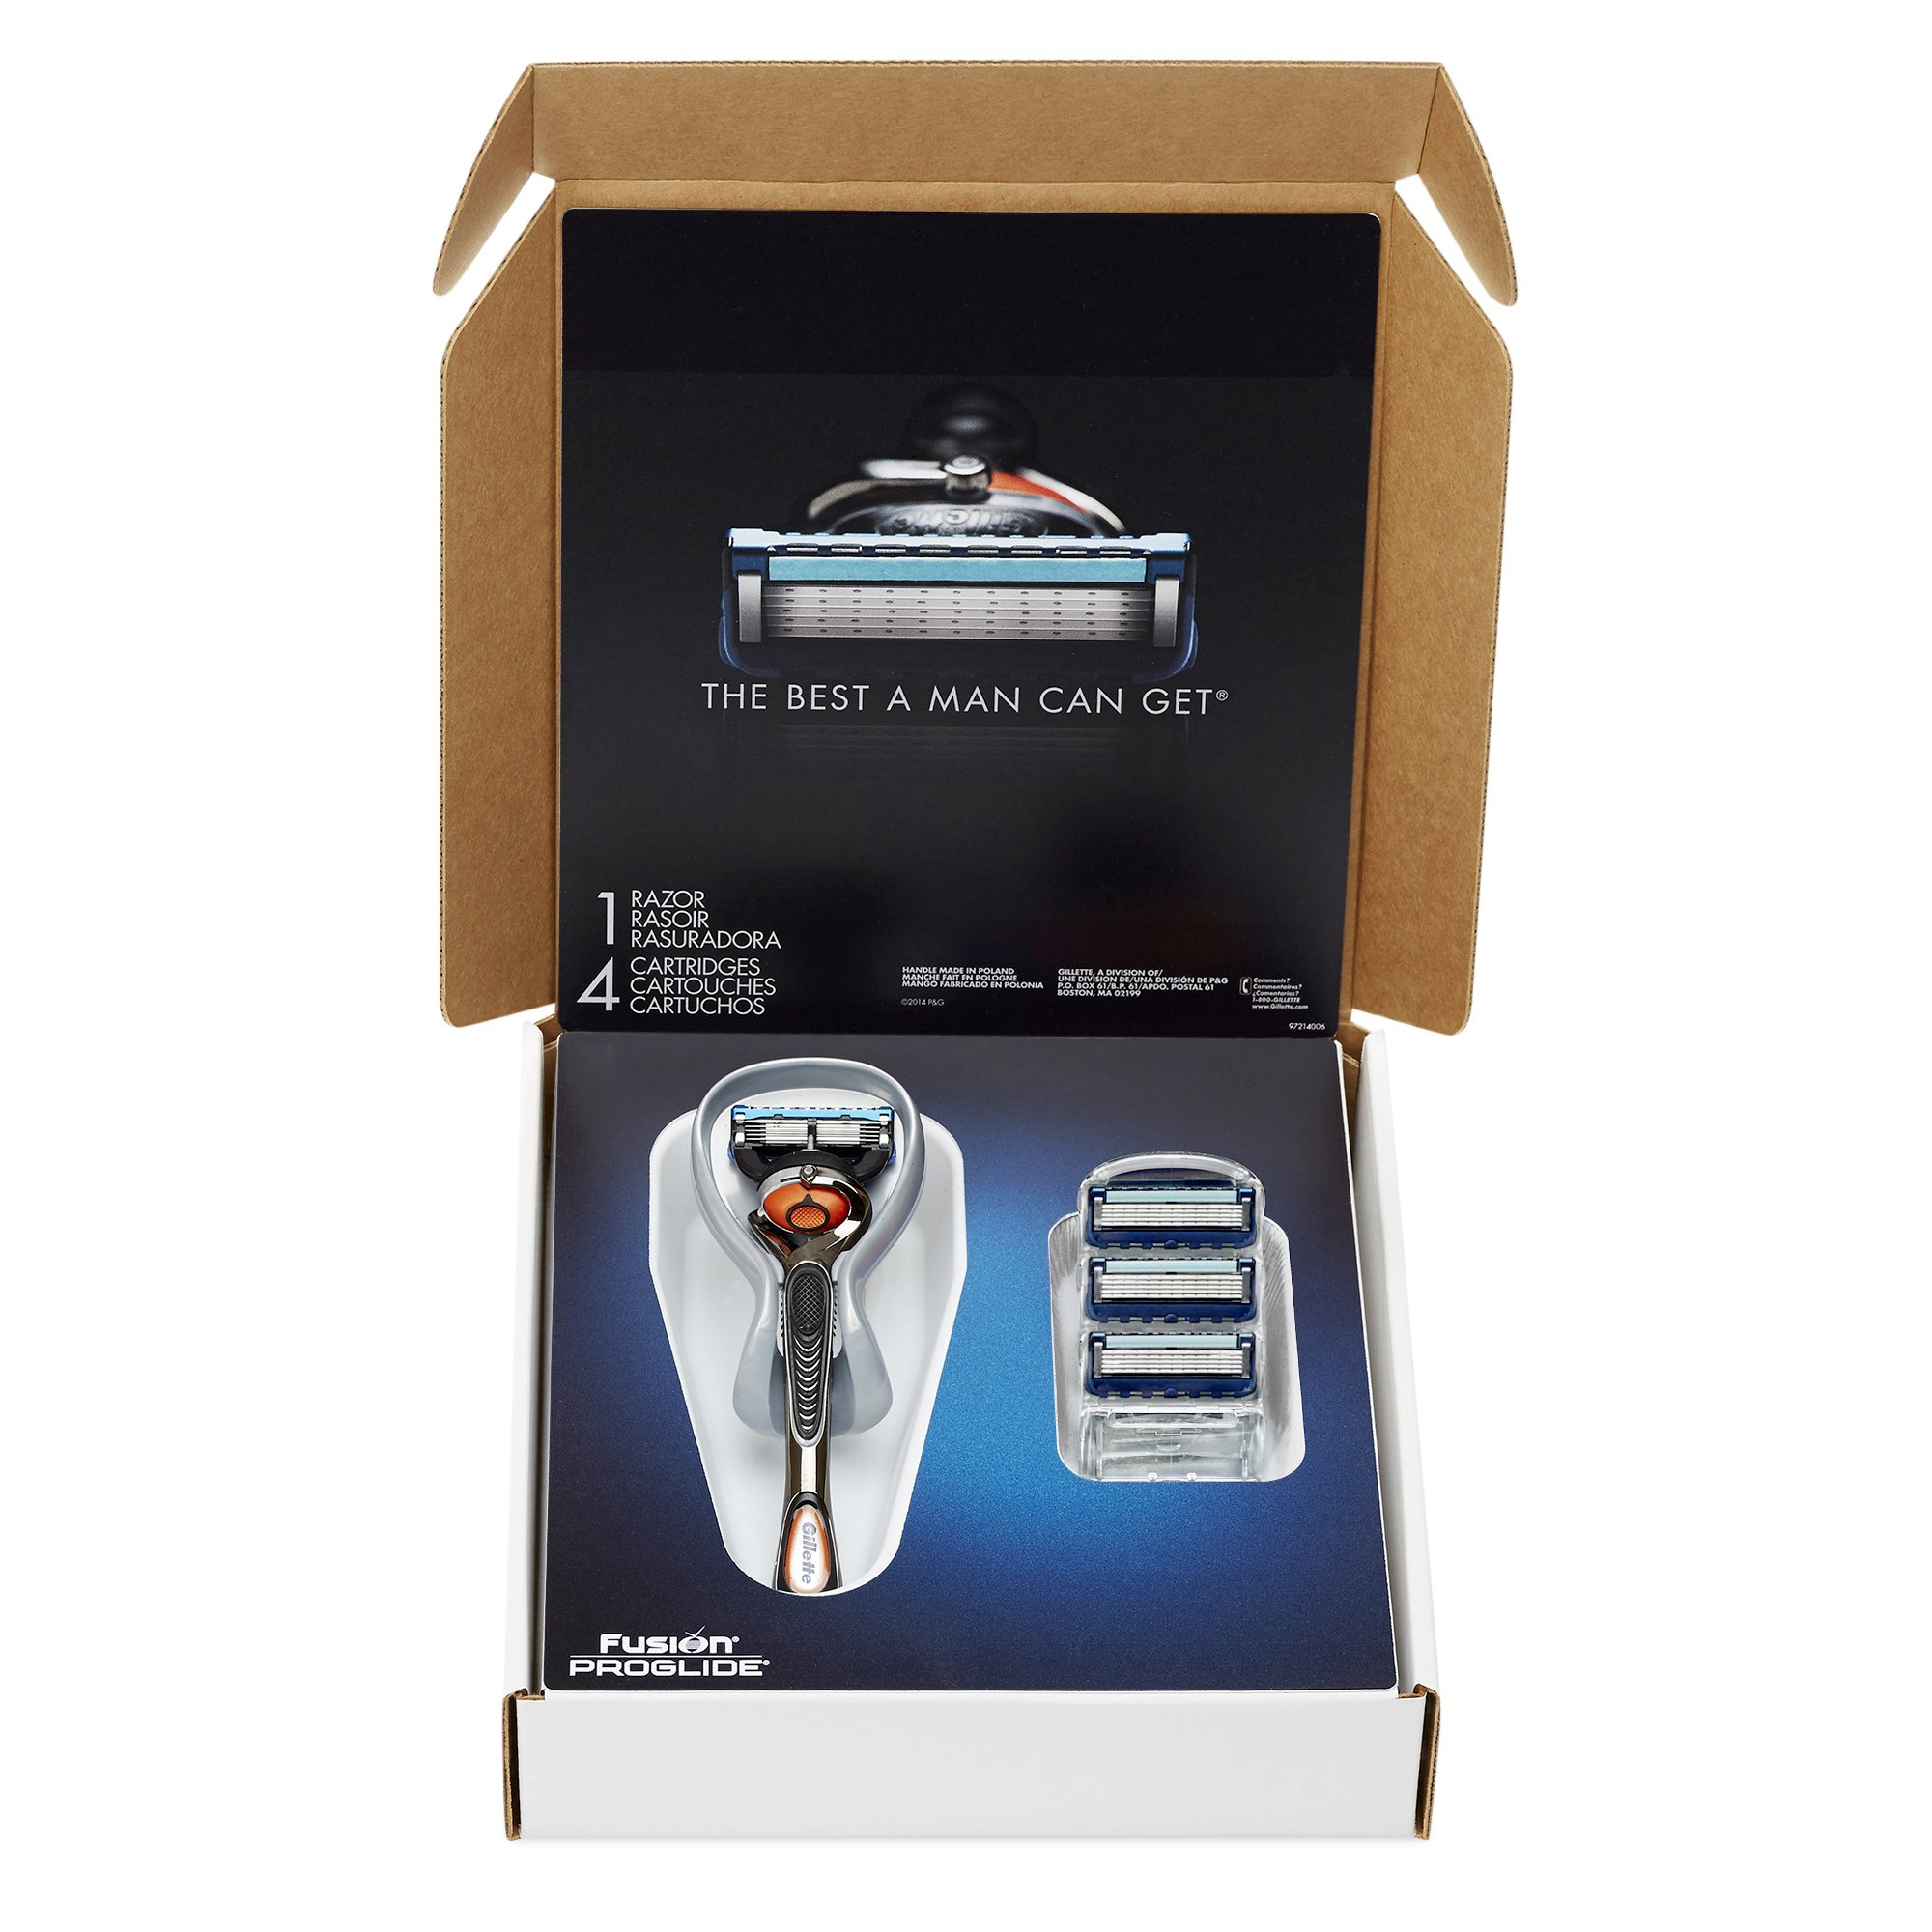 Gillette Fusion ProGlide Bundle with 1 ProGlide Razor Handle with FlexBall Technology + 4 ProGlide Razor Blade Refills, Mens Razors / Blades